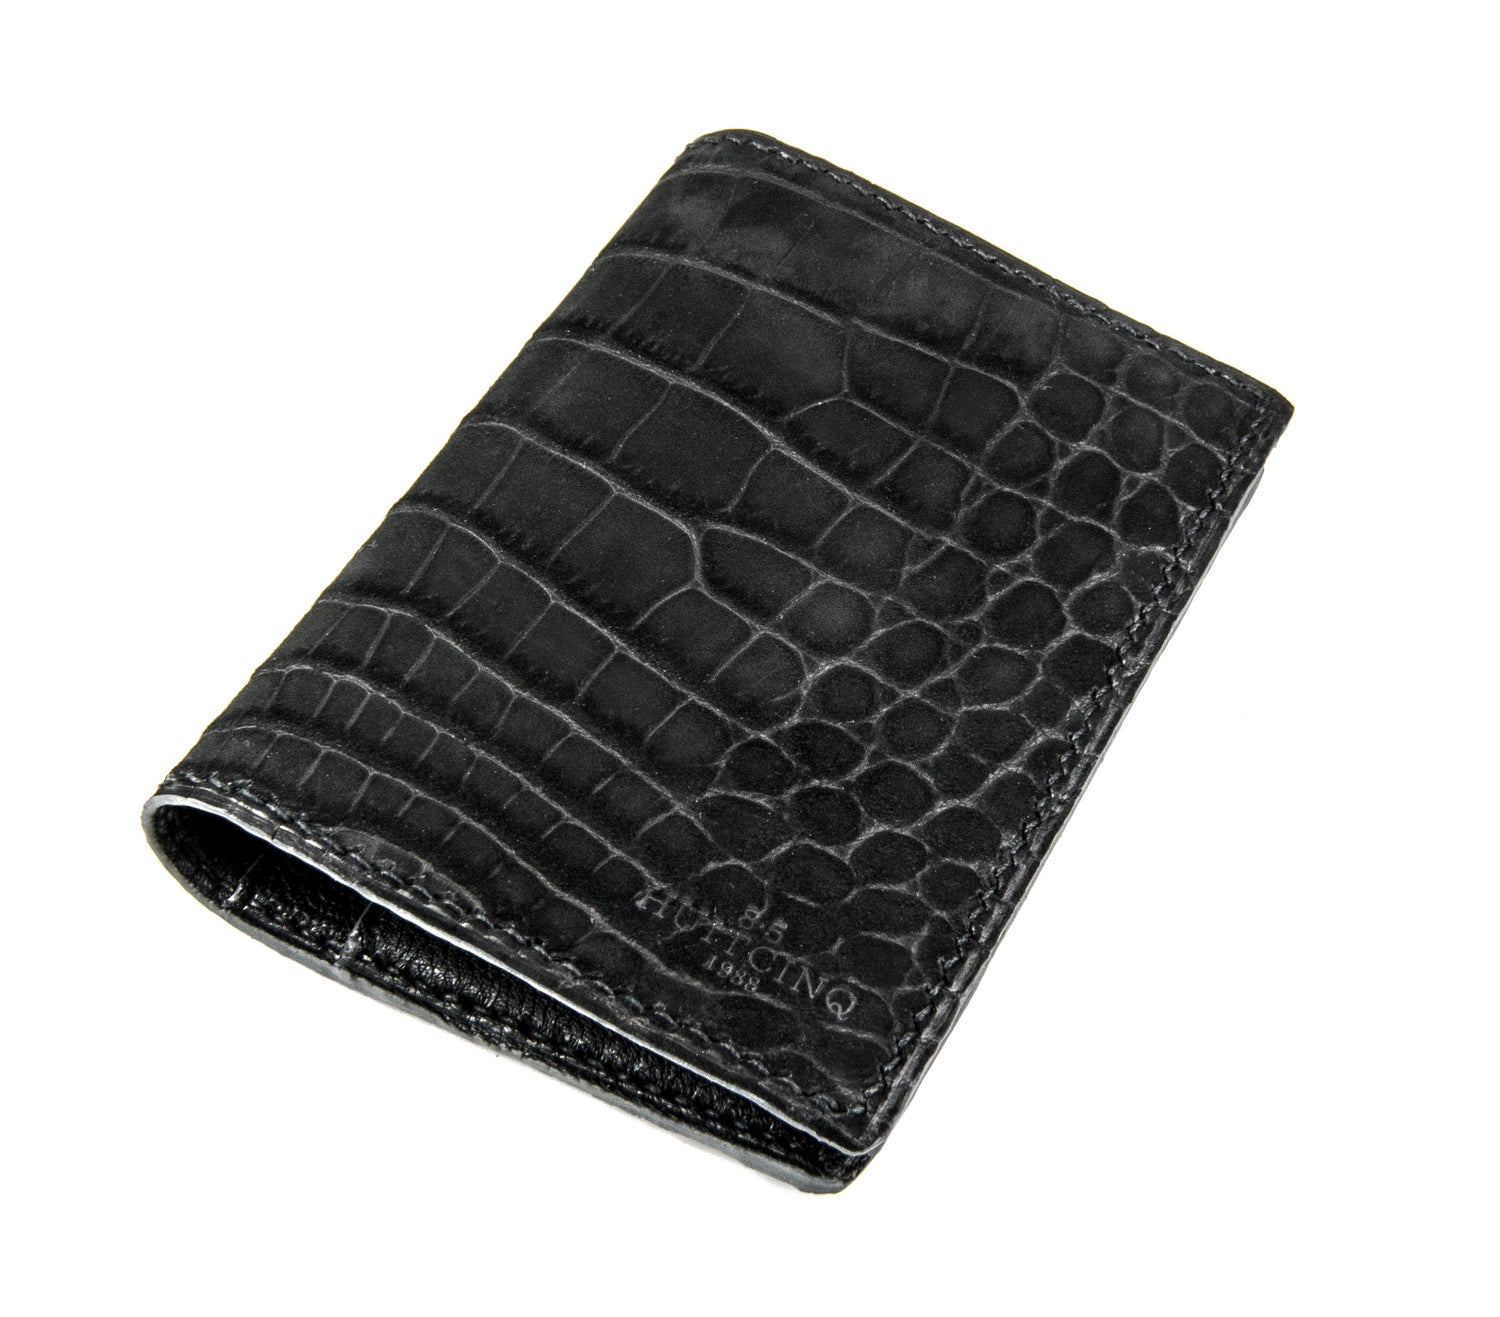 Image of Bifold n°4 - Black nubuck alligator